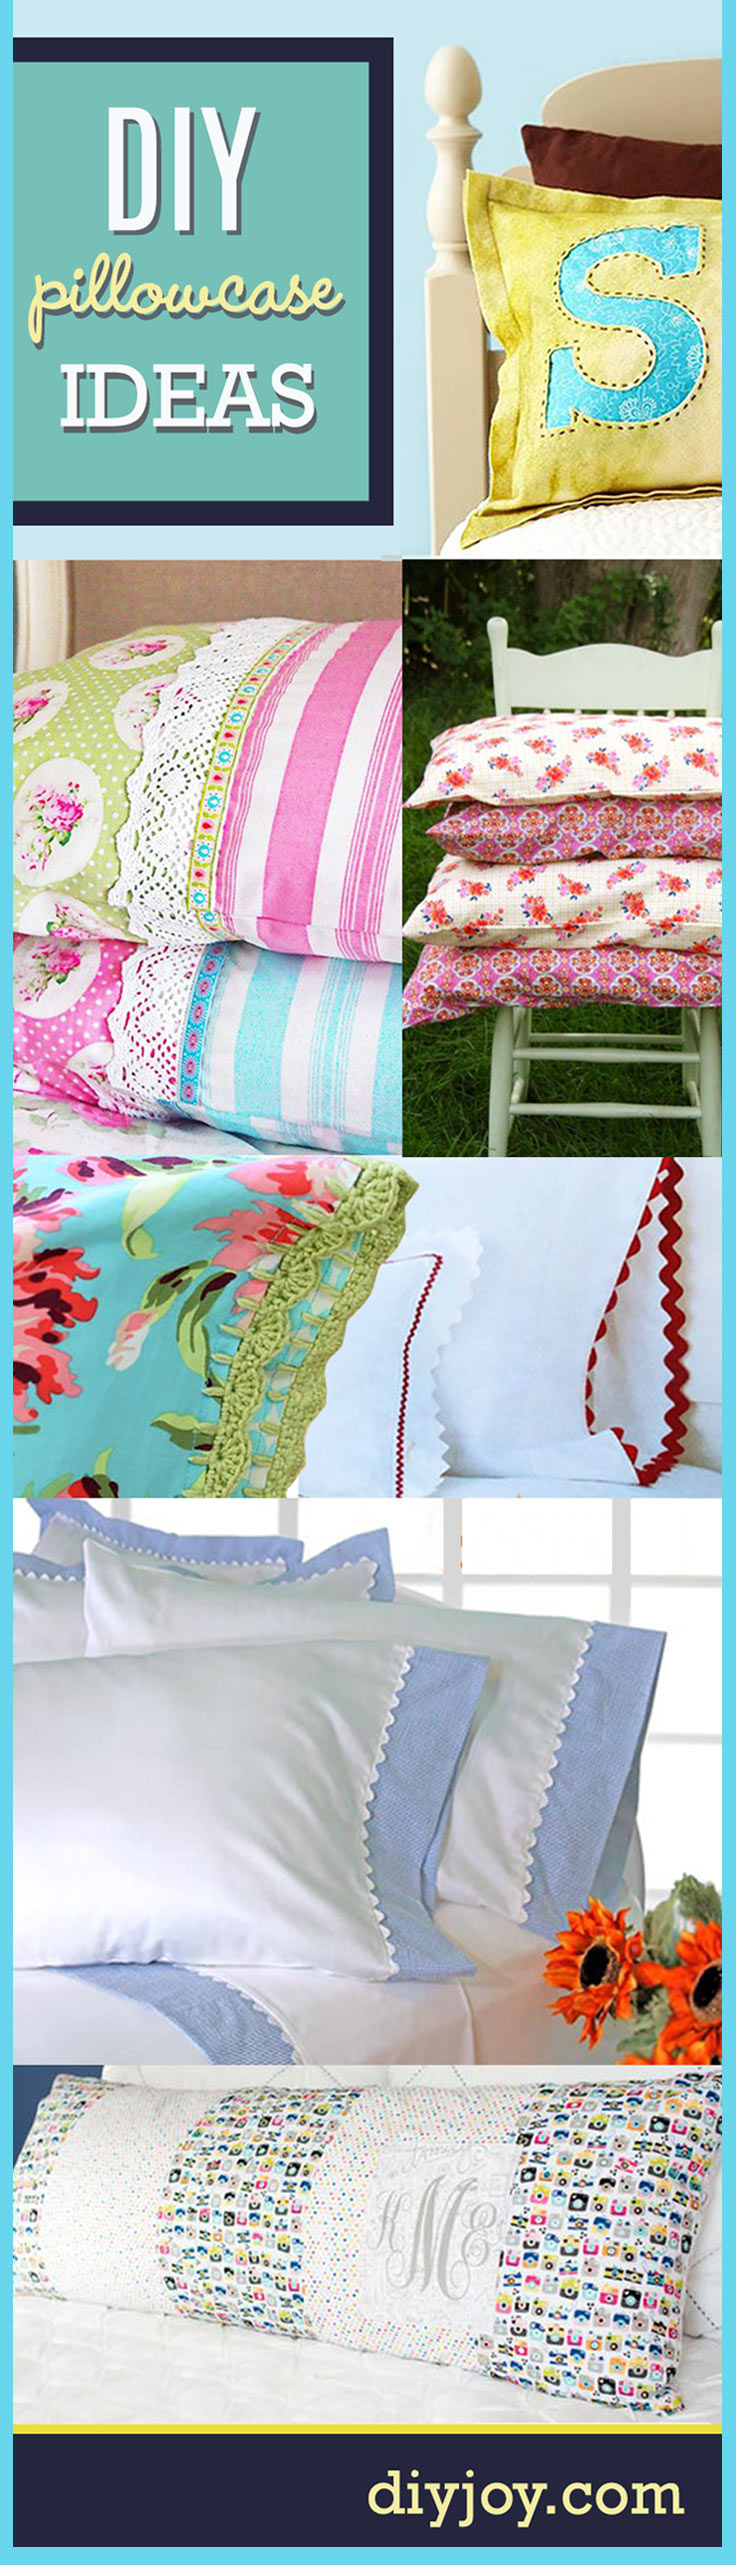 Sewing Projects For The Home Diy Pillowcase Ideas Diy Joy